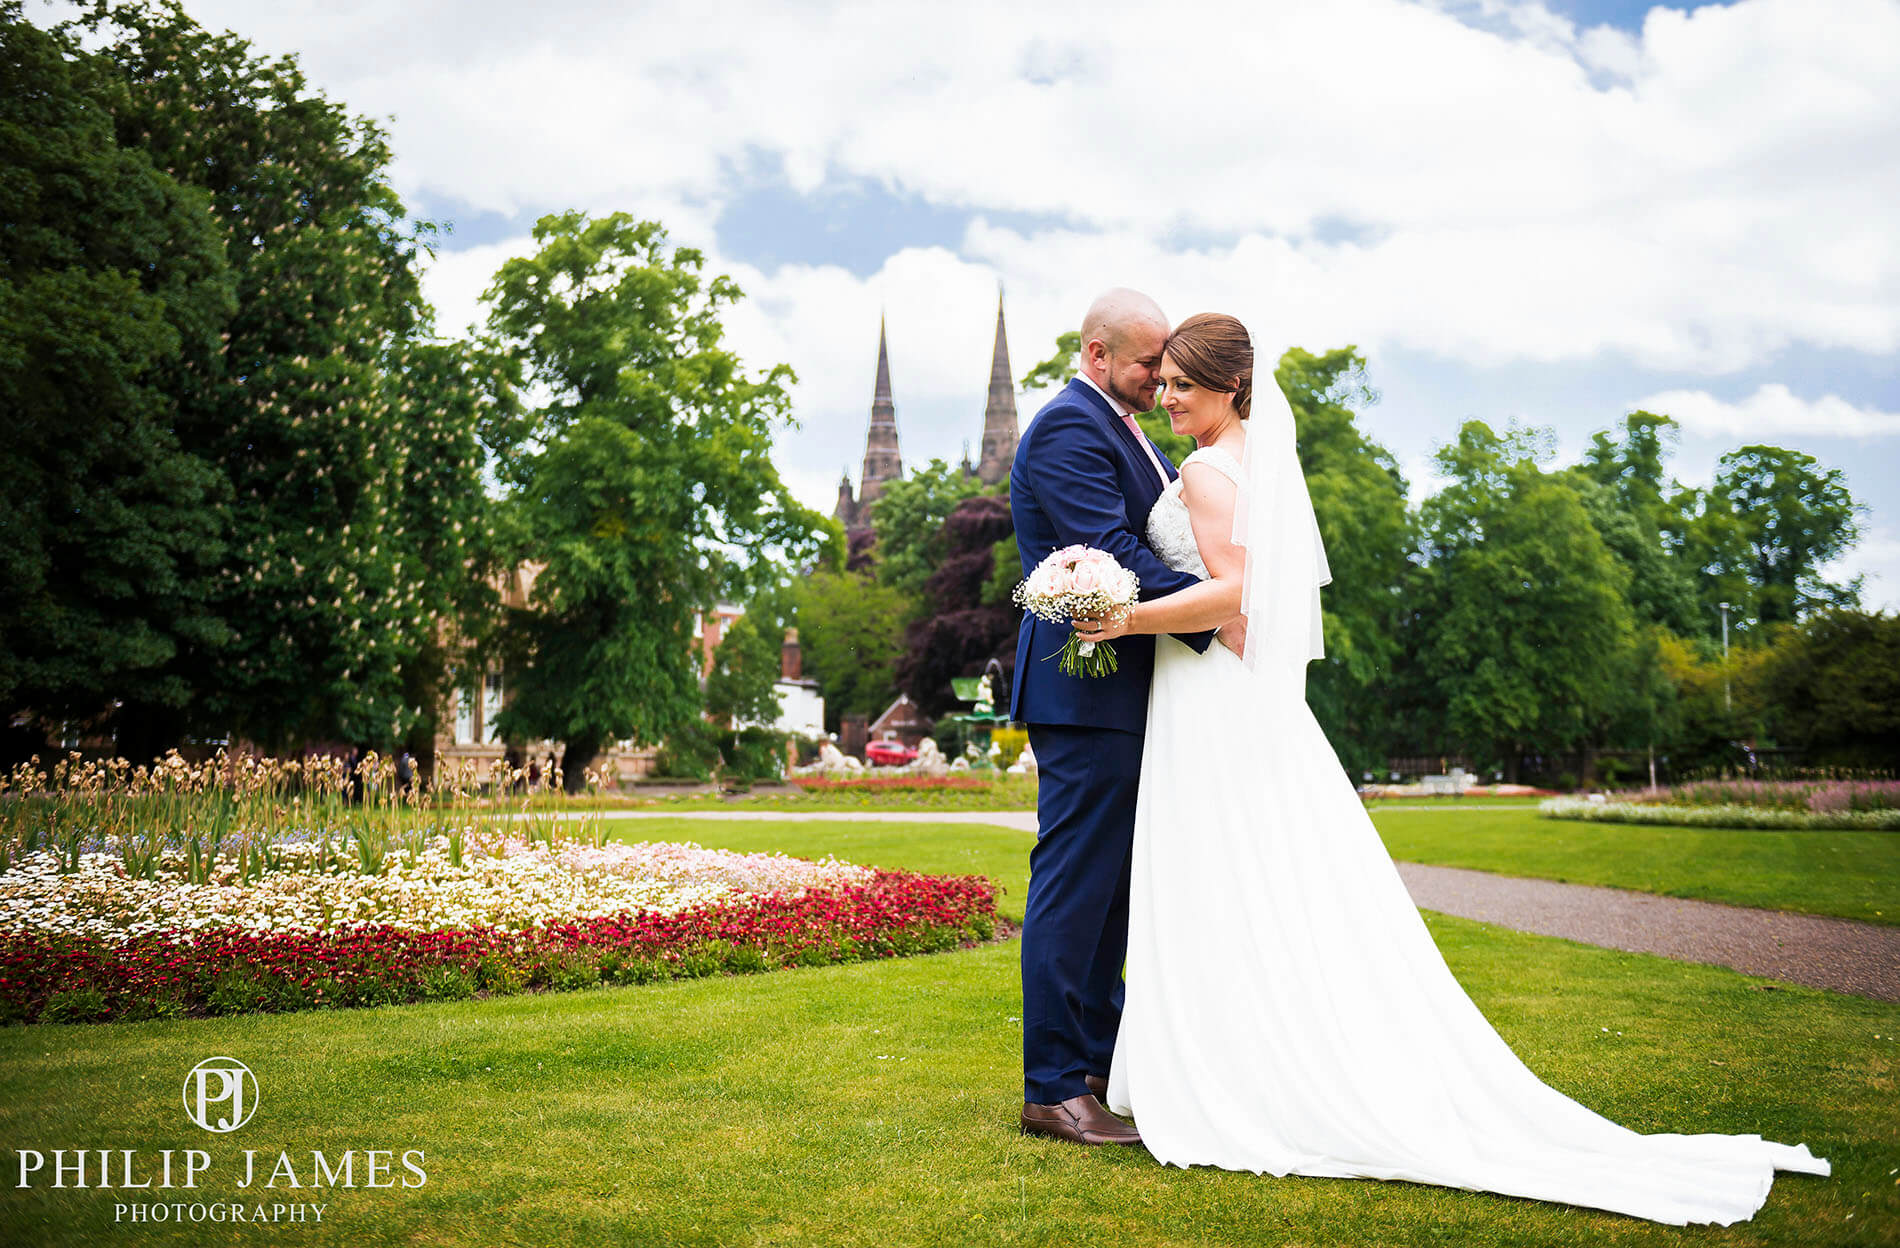 Birmingham Wedding Photographer - Philip James Photography based in Solihull (5 of 68)